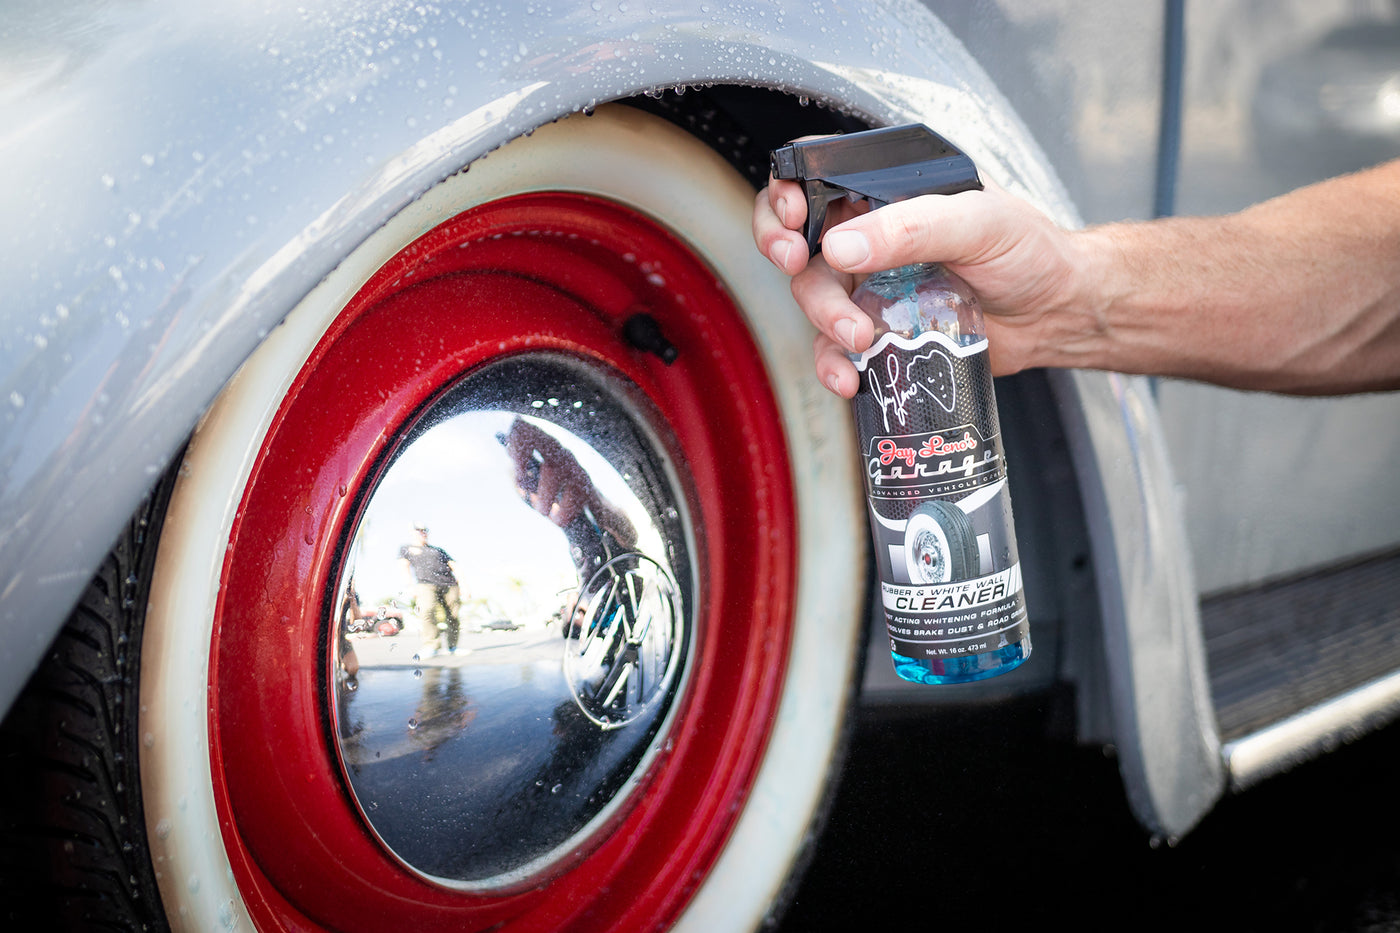 How to keep whitewall tires clean leno 39 s garage - How to keep your car exterior clean ...